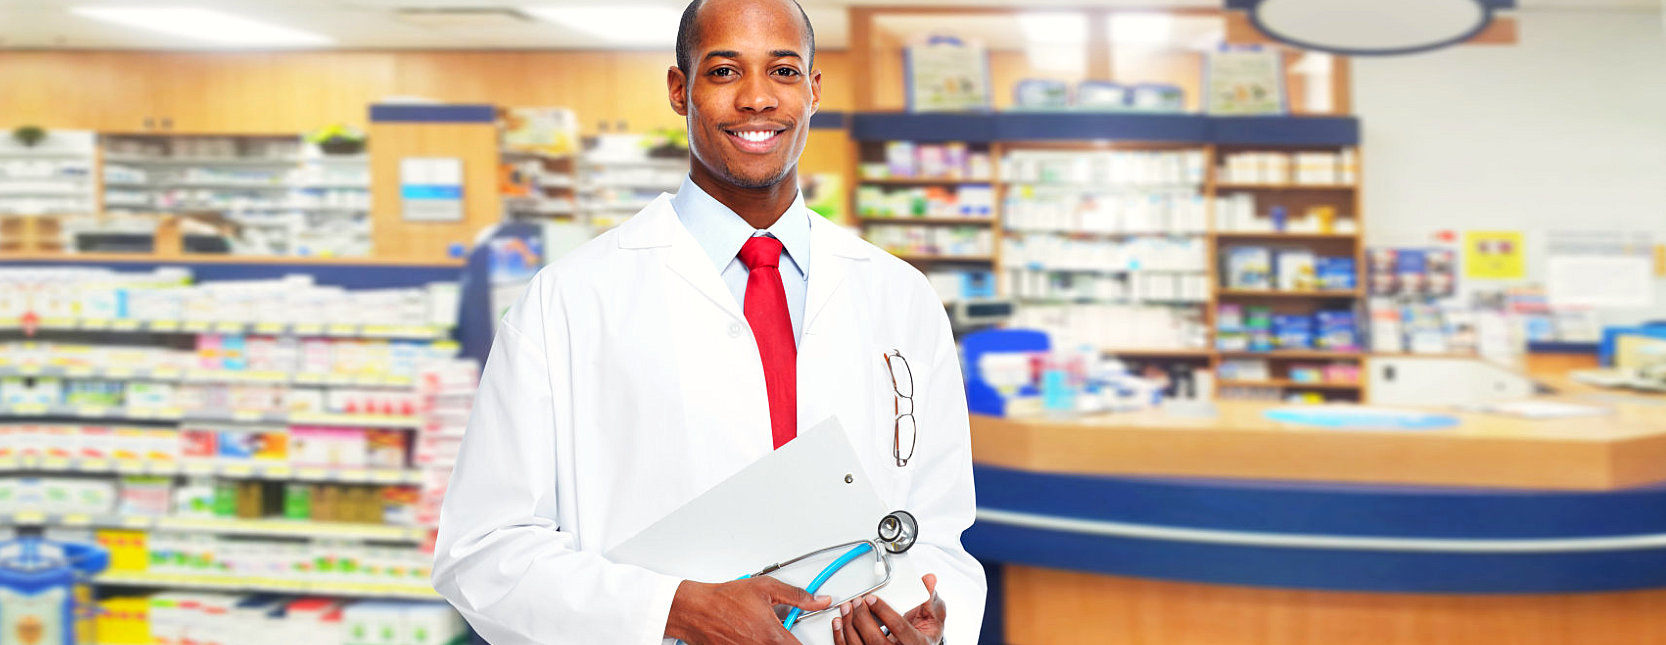 pharmacist holding his stethoscope and clipboard